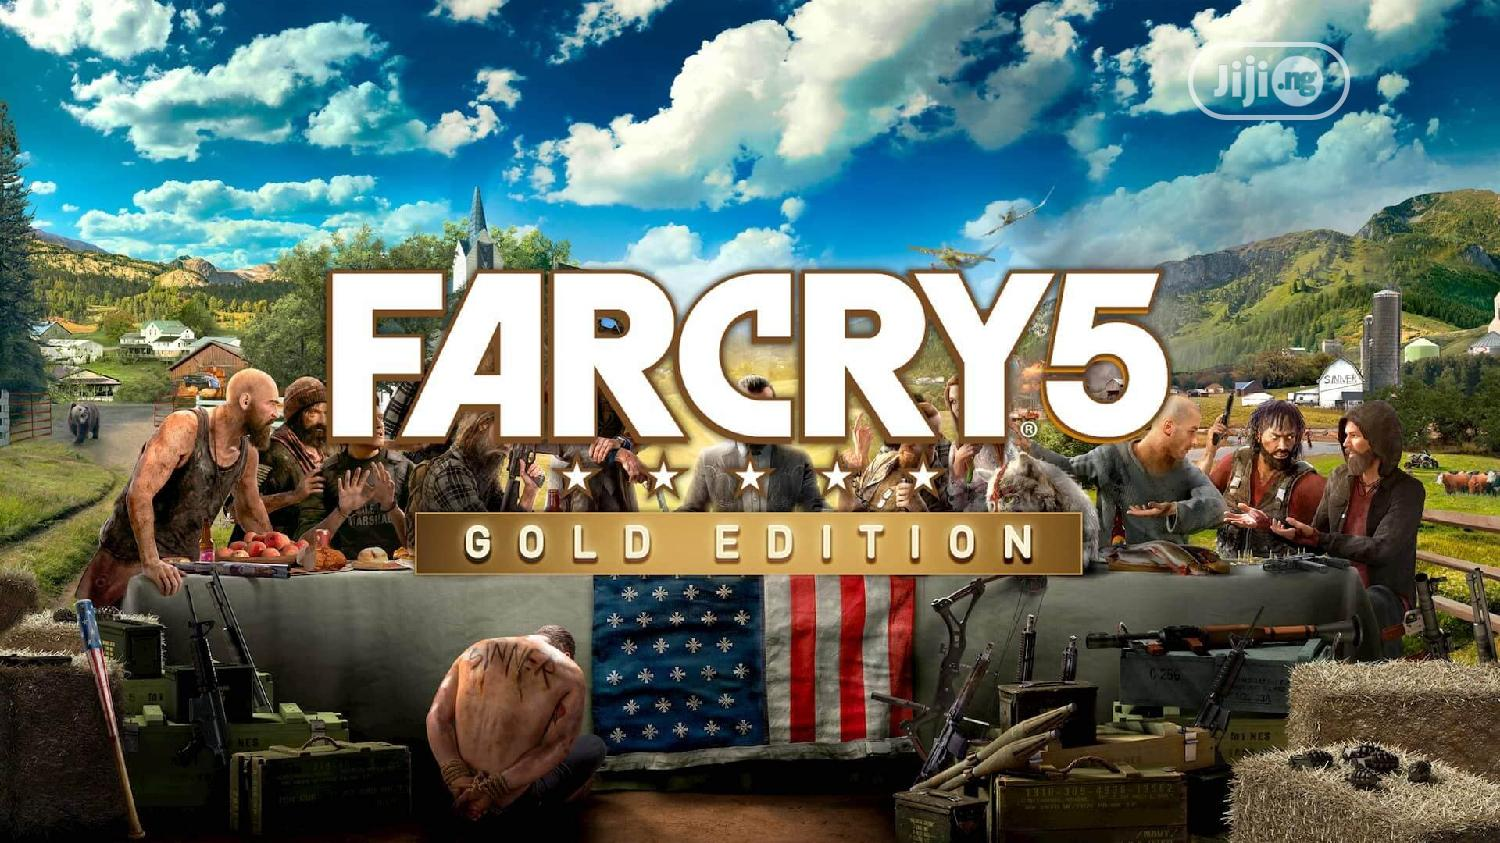 Far Cry 5 And New Dawn In Aba South Video Games Prince Dennis Jiji Ng For Sale In Aba South Buy Video Games From Prince Dennis On Jiji Ng